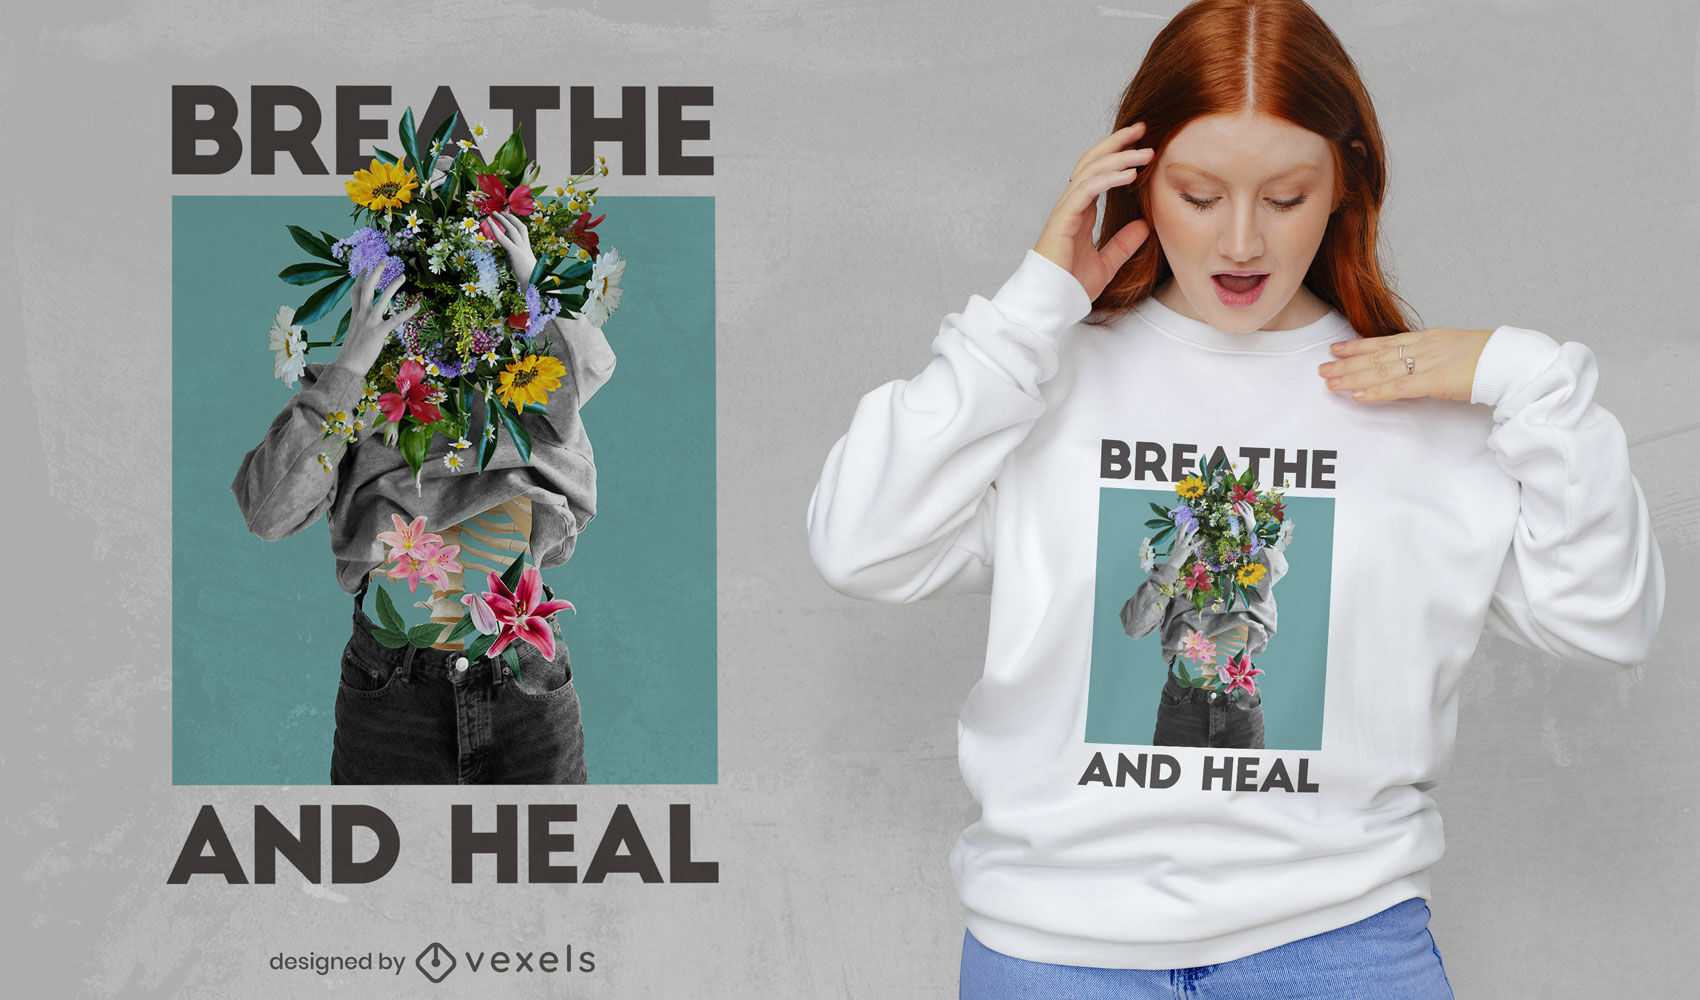 Breathe and heal woman floral psd t-shirt design